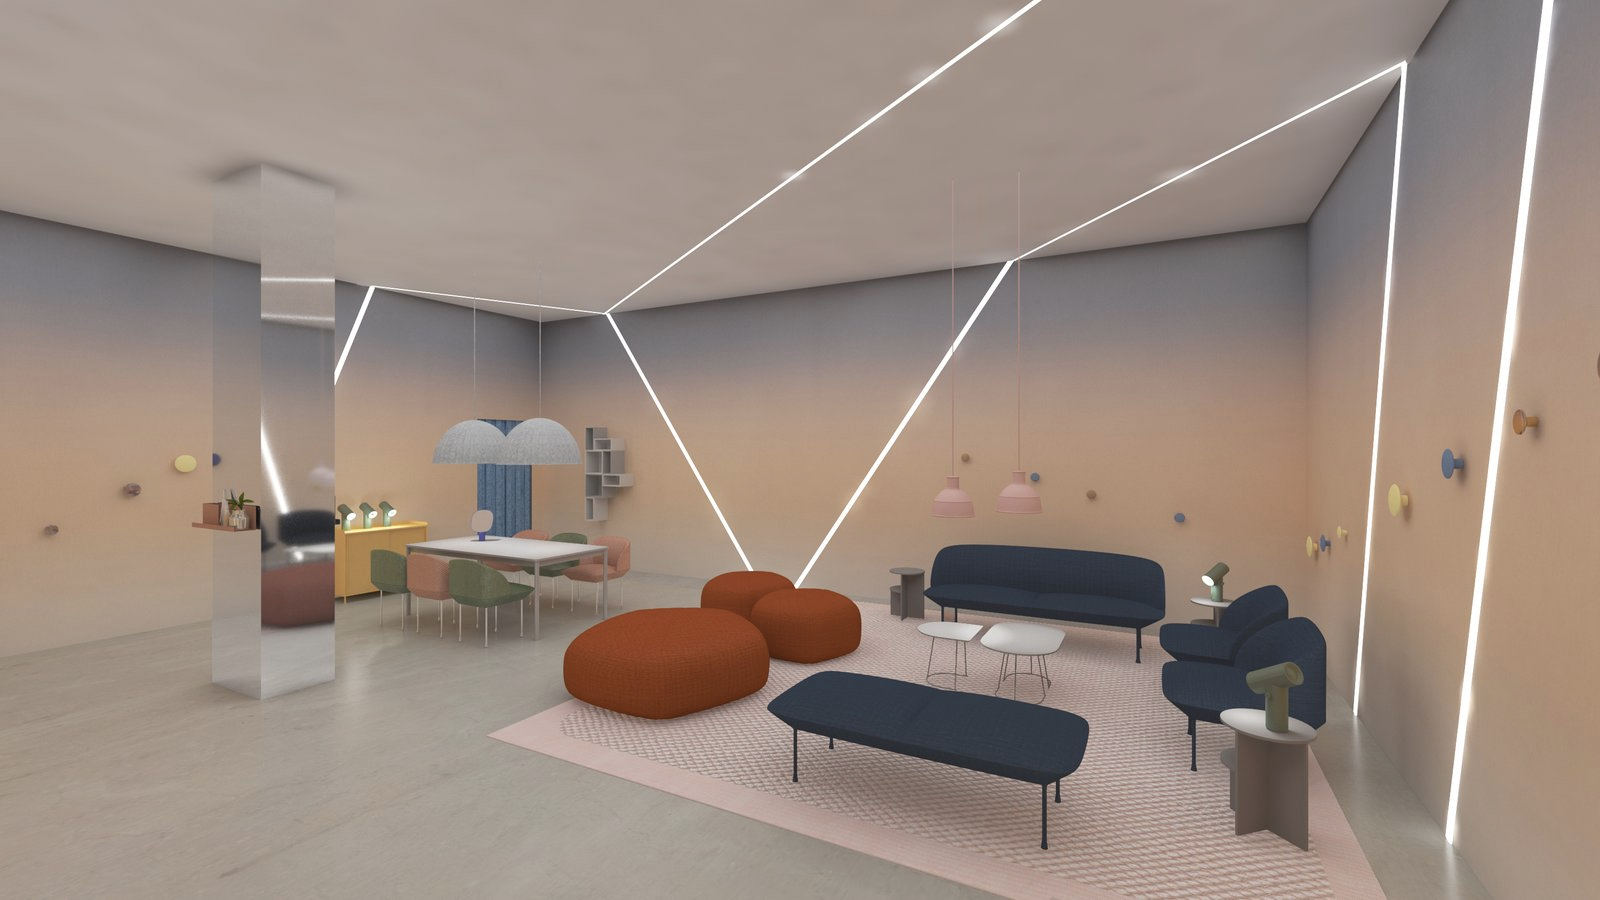 10 must-see installations at Milan Design Week: Google's 'Space for Being'